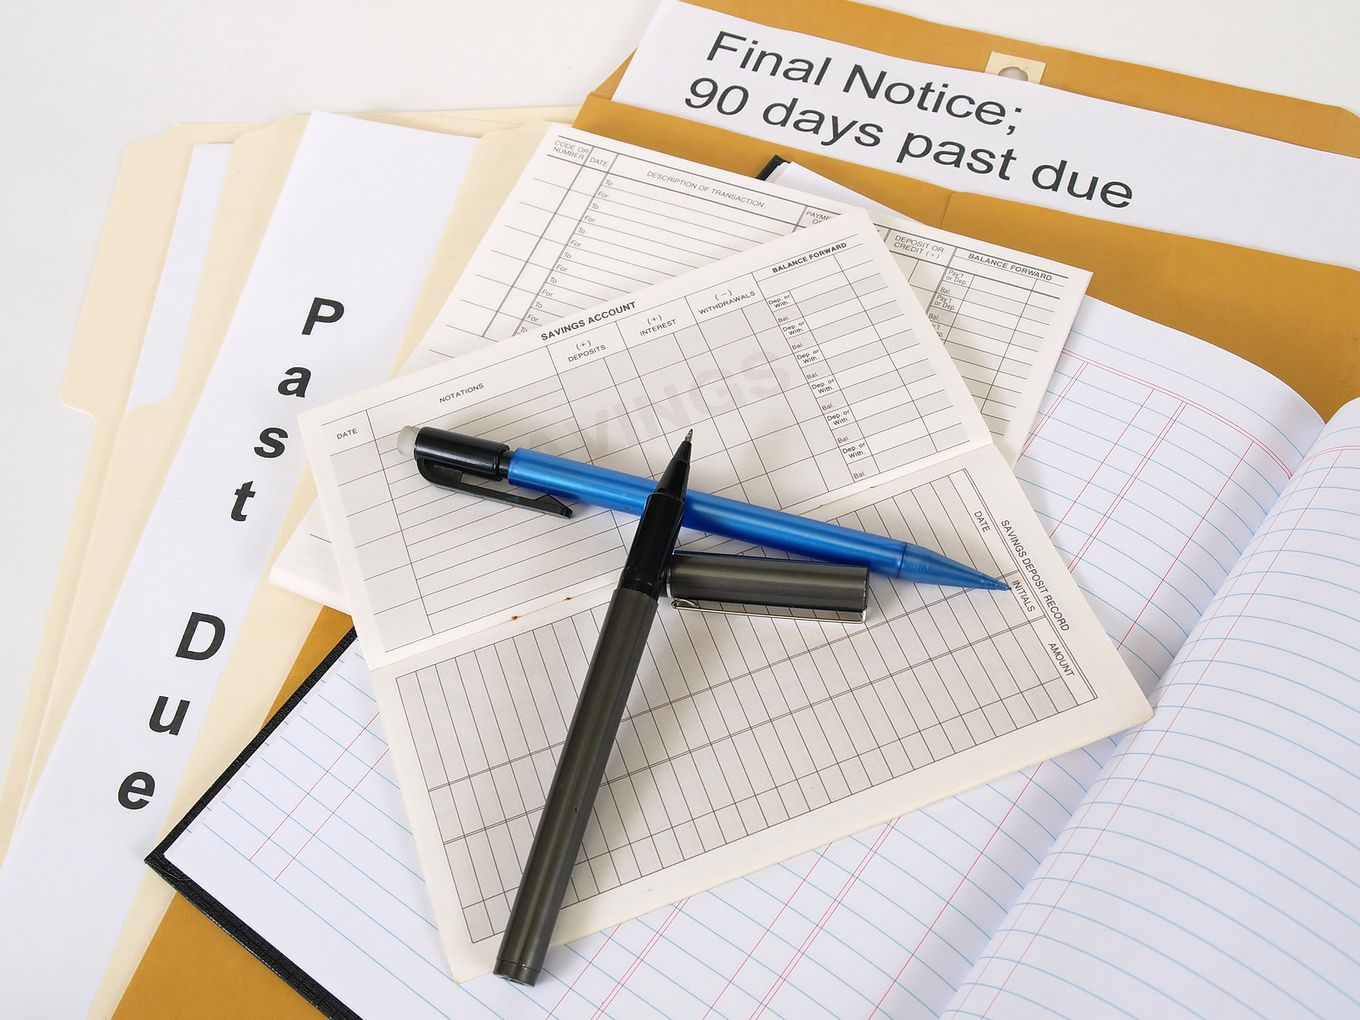 The Statute of Limitations for Debt Collection in Florida